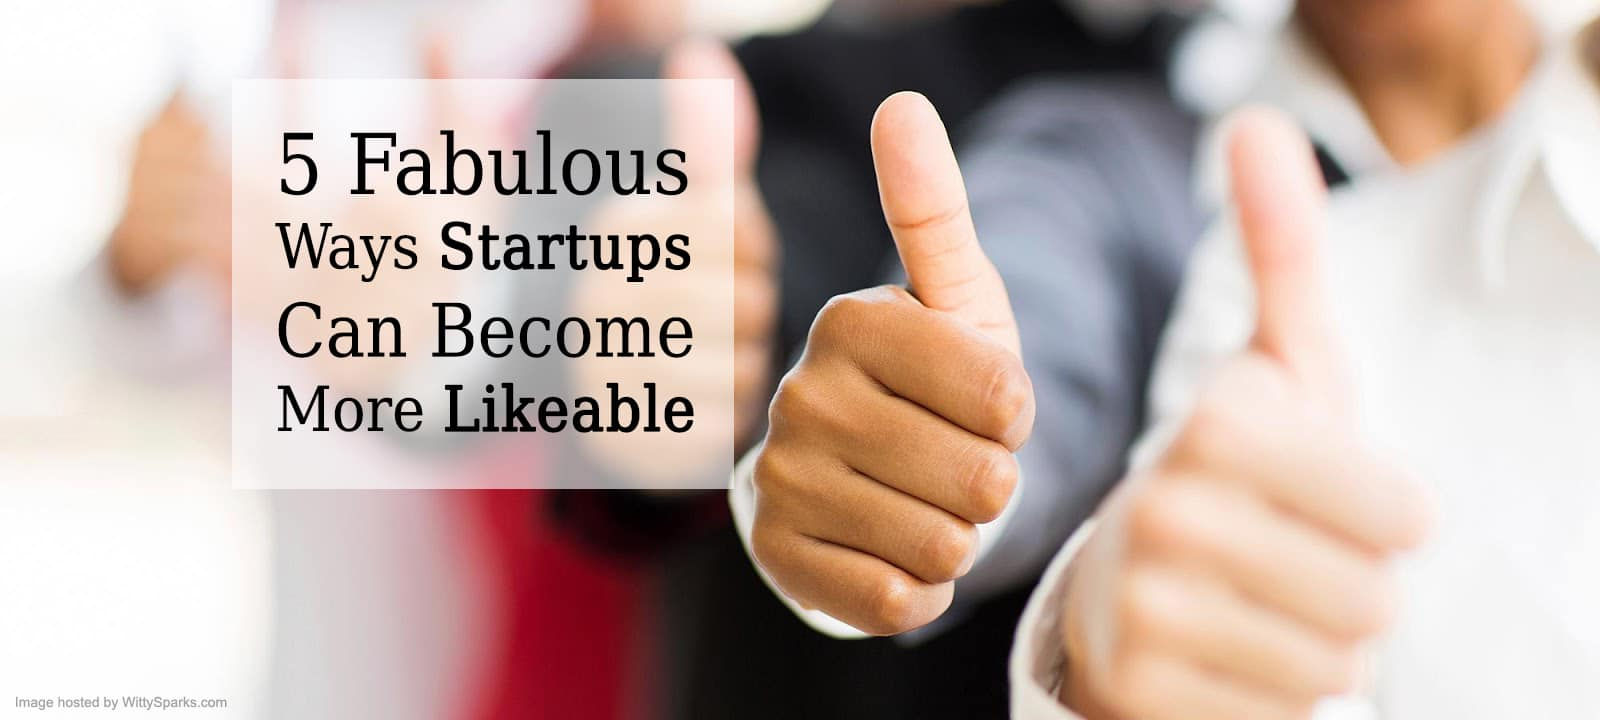 Ways Startups Can Become More Likeable